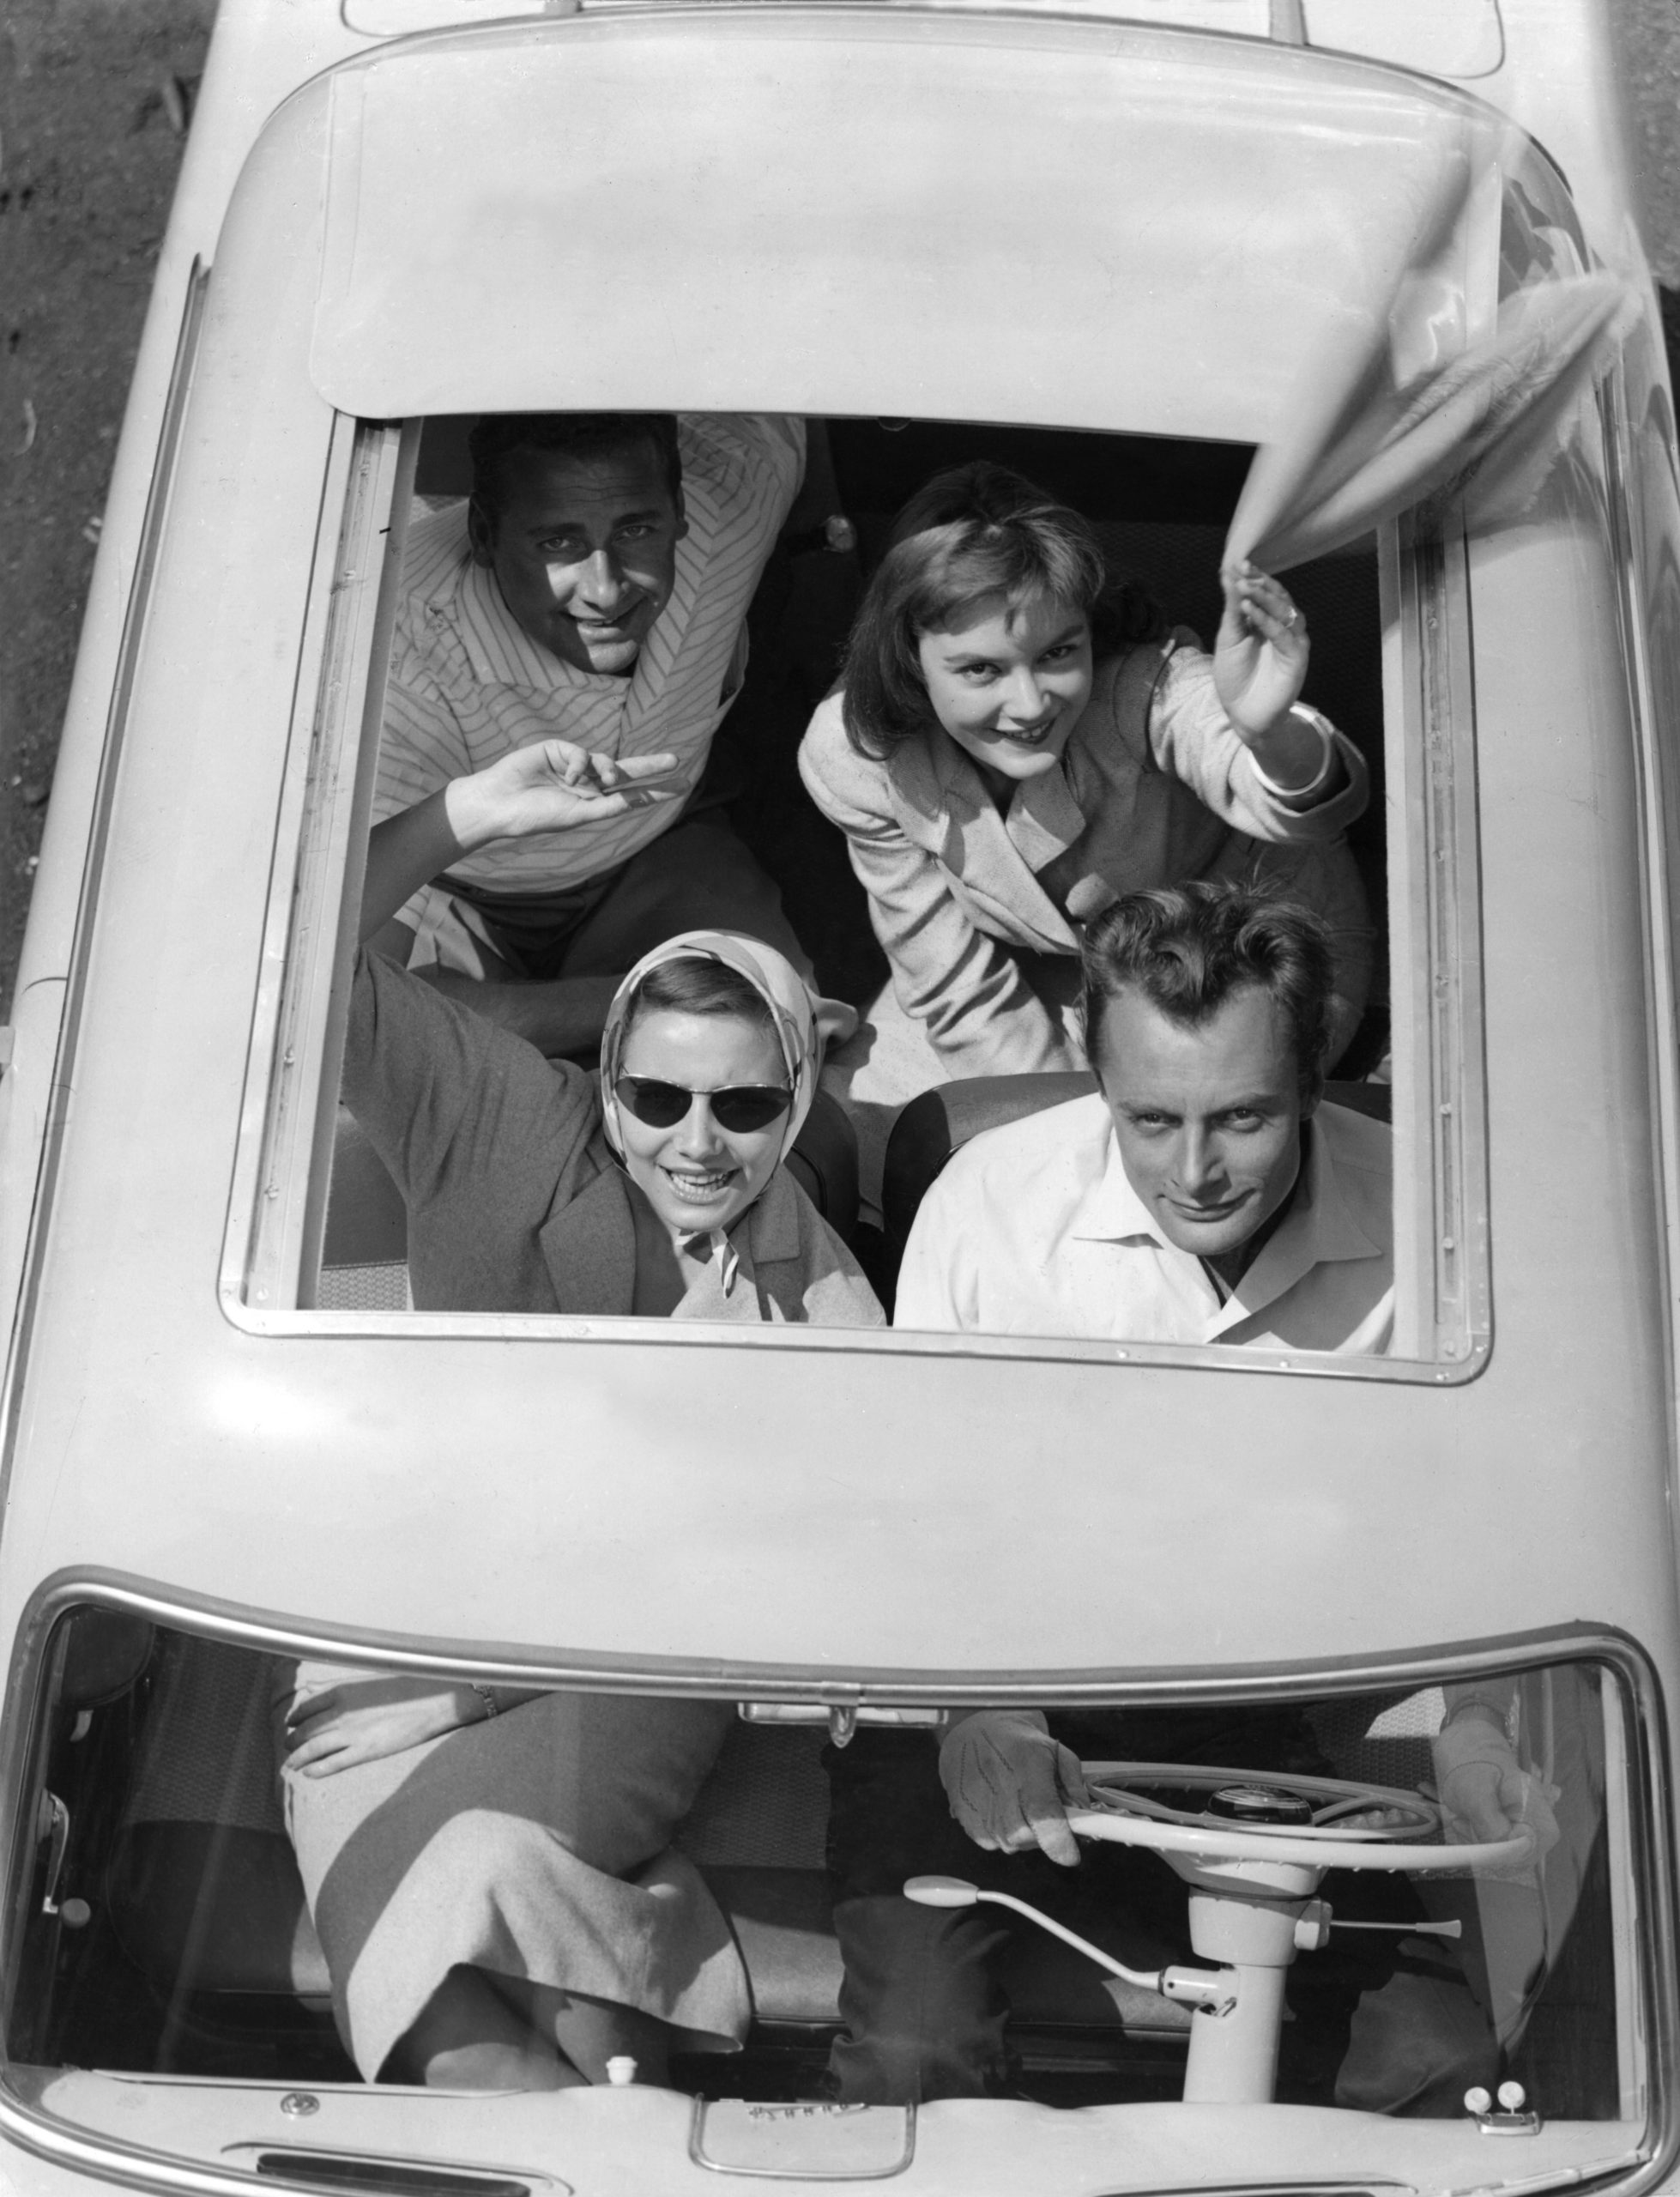 young people waving from open convertible top of car in 1950s